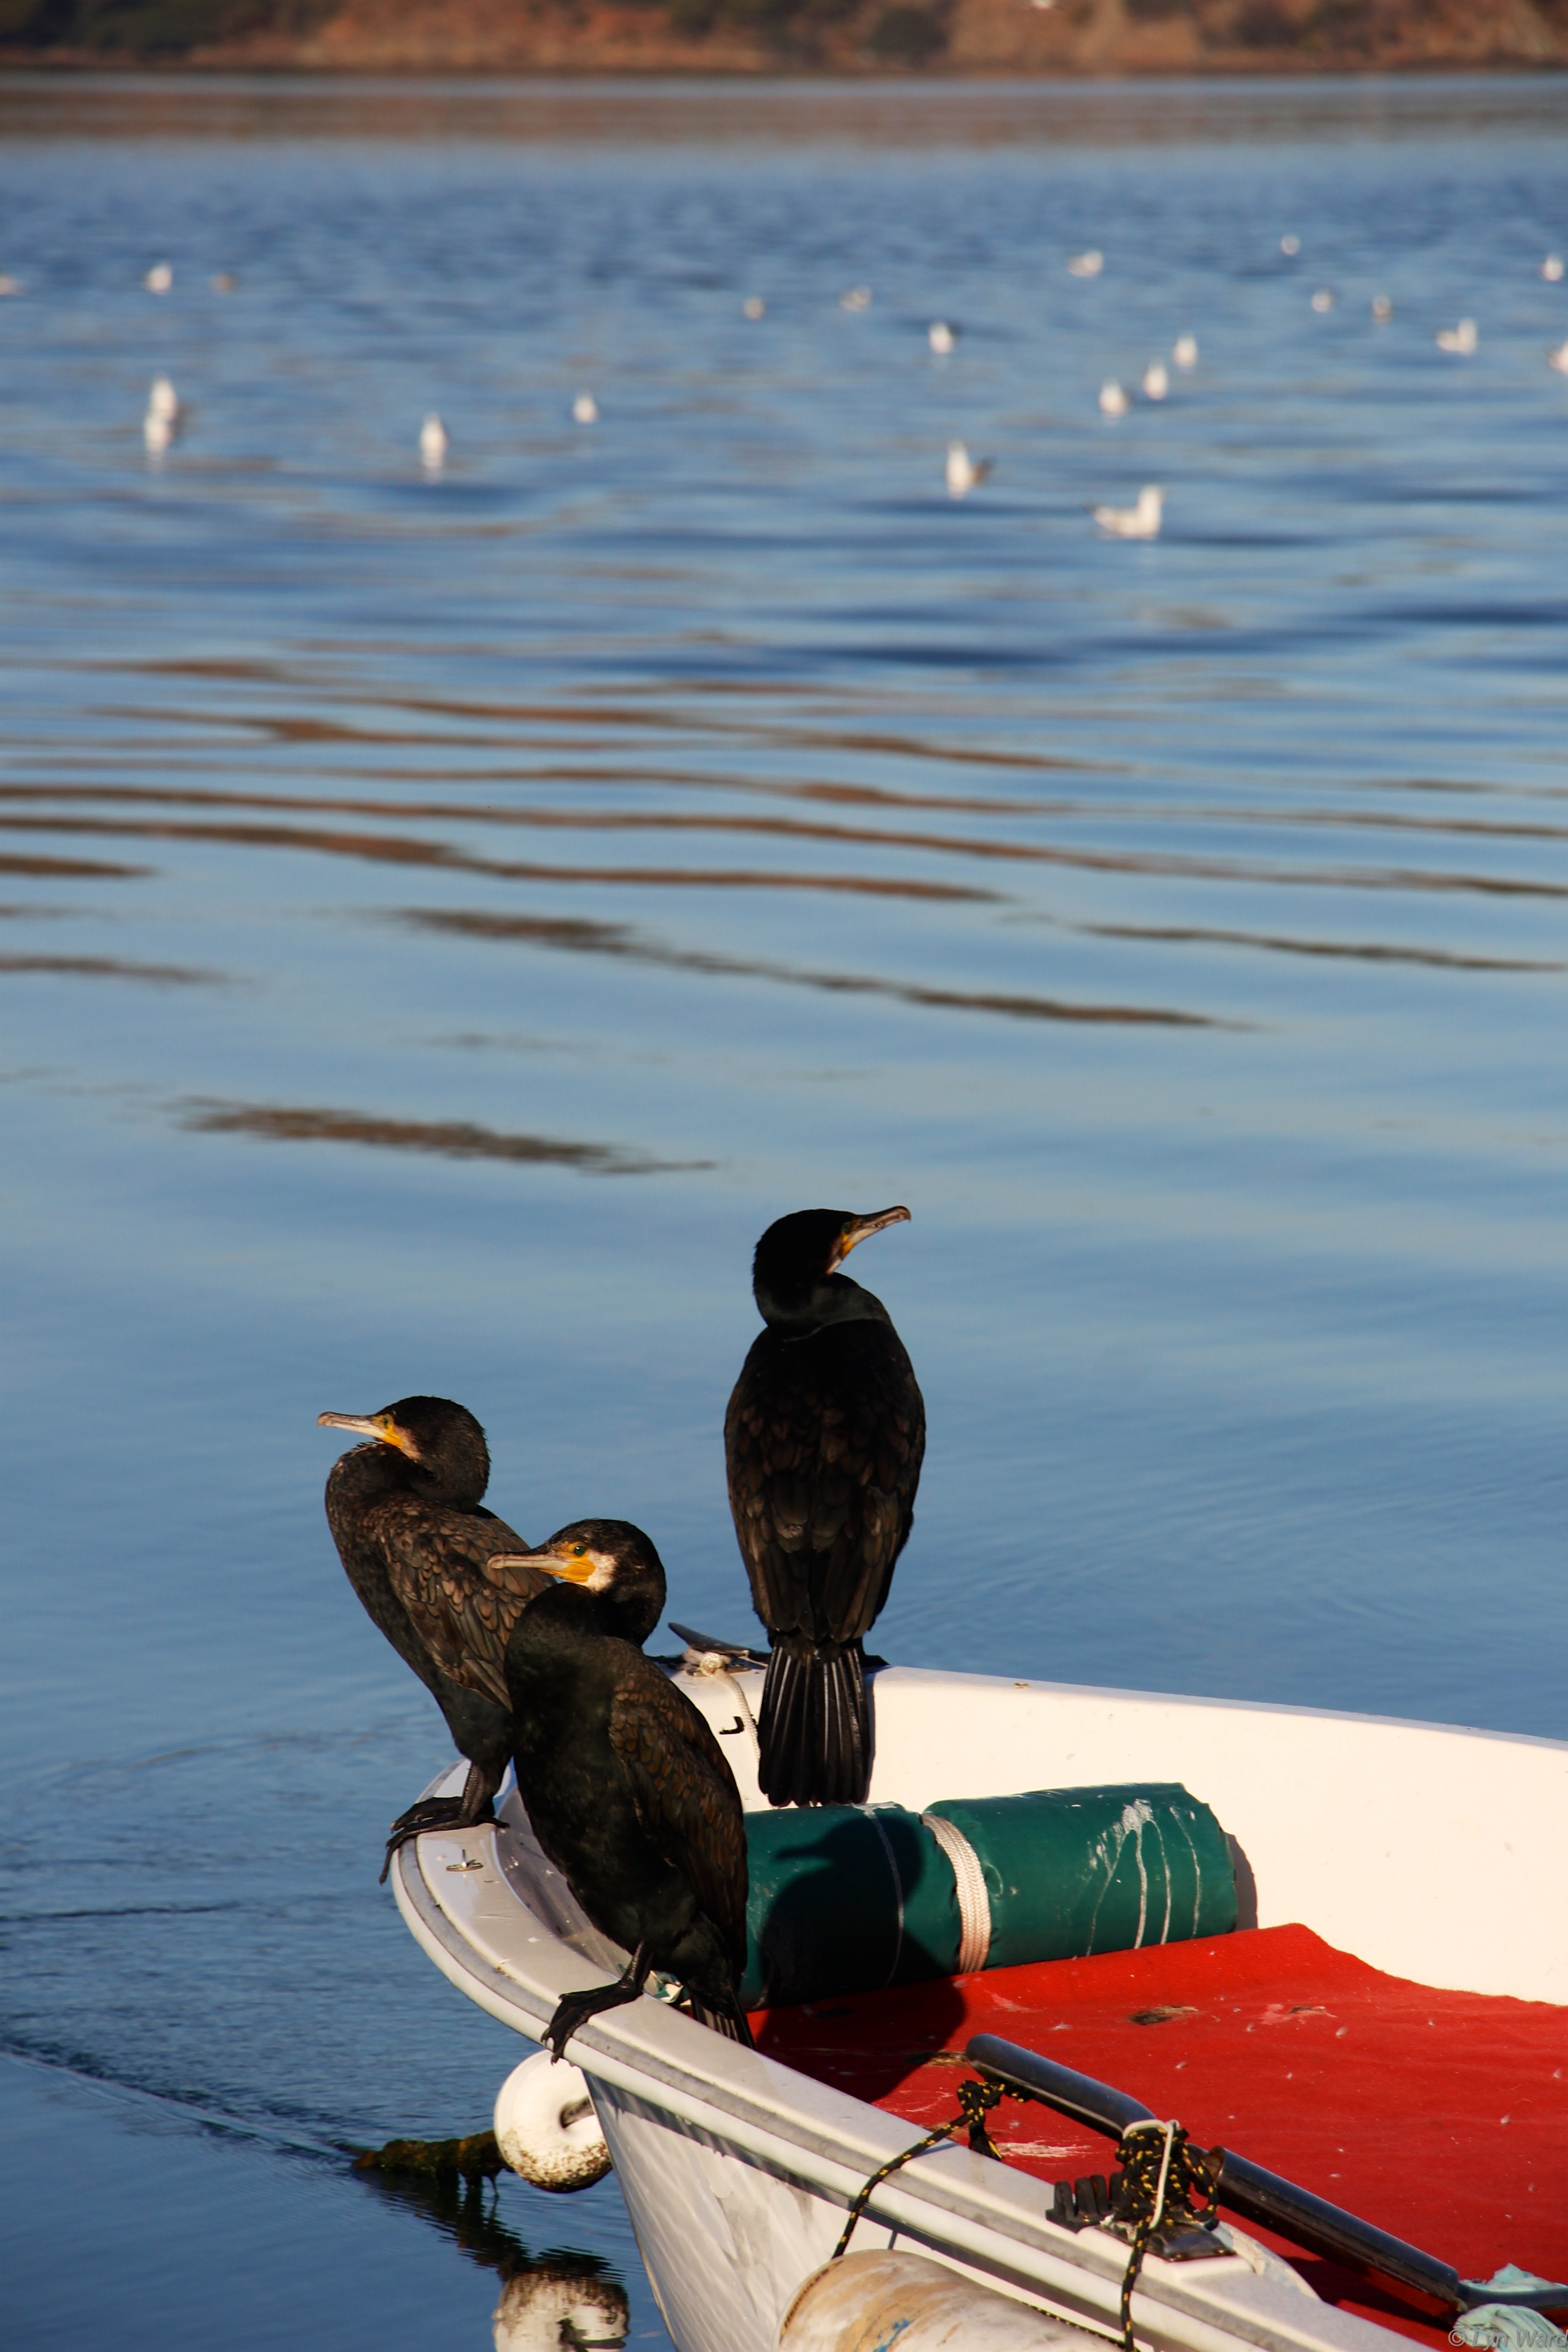 These Cormorants came for breakfast too